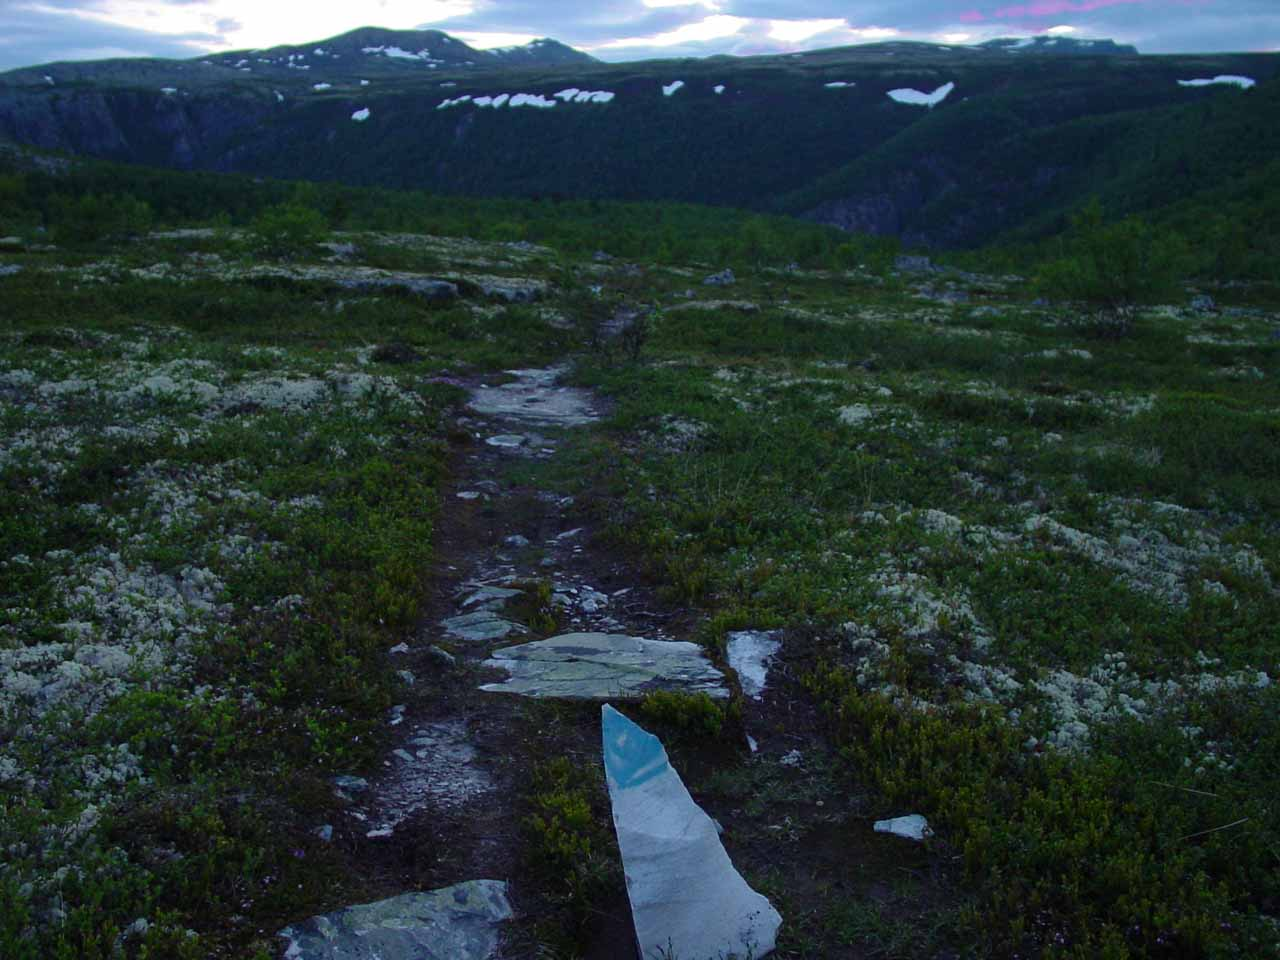 Now the trail was marked by blue arrows or markings